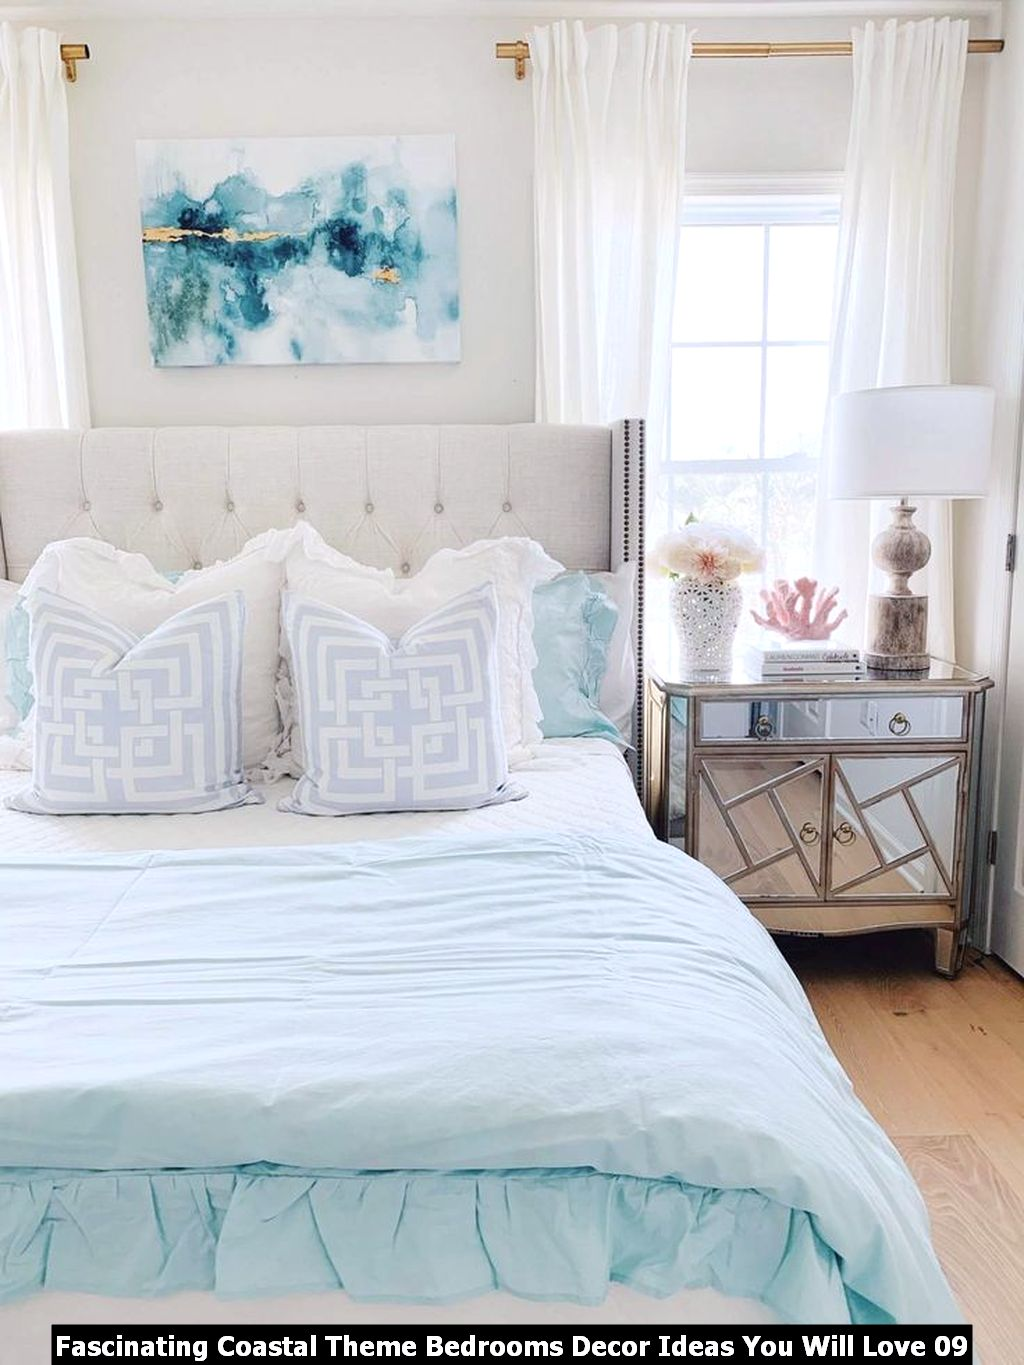 Fascinating Coastal Theme Bedrooms Decor Ideas You Will Love 09